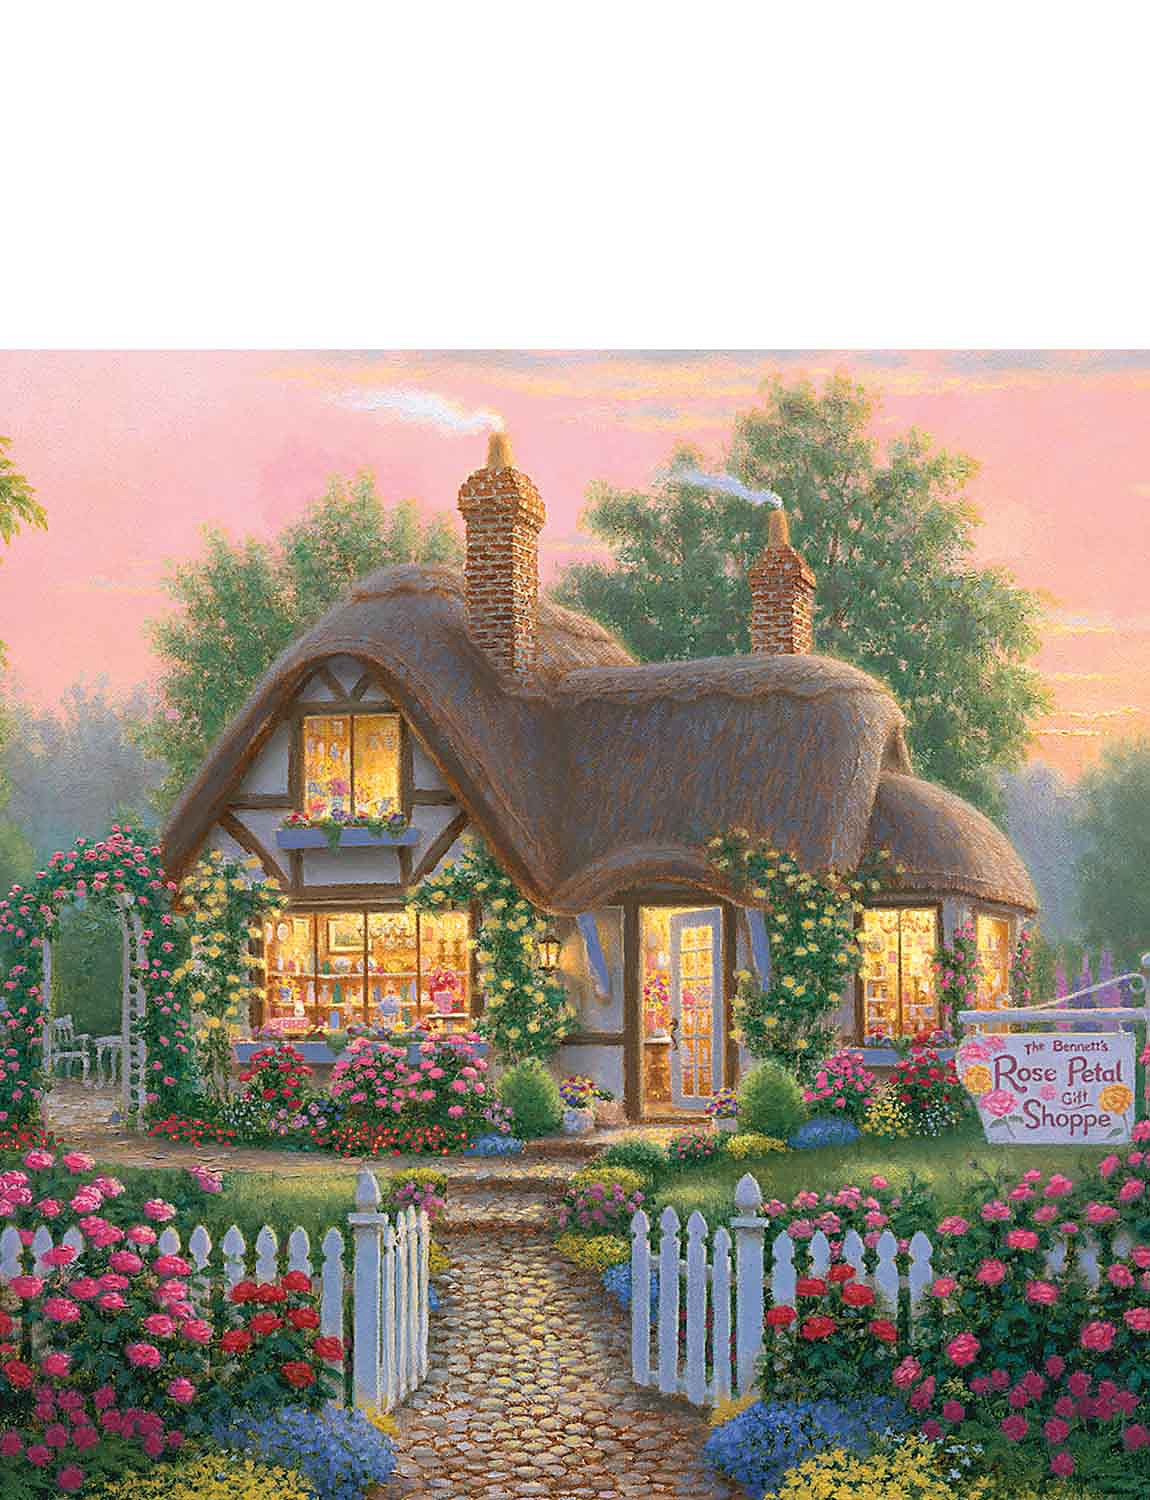 Rose Petal Gift Shop - Jigsaw